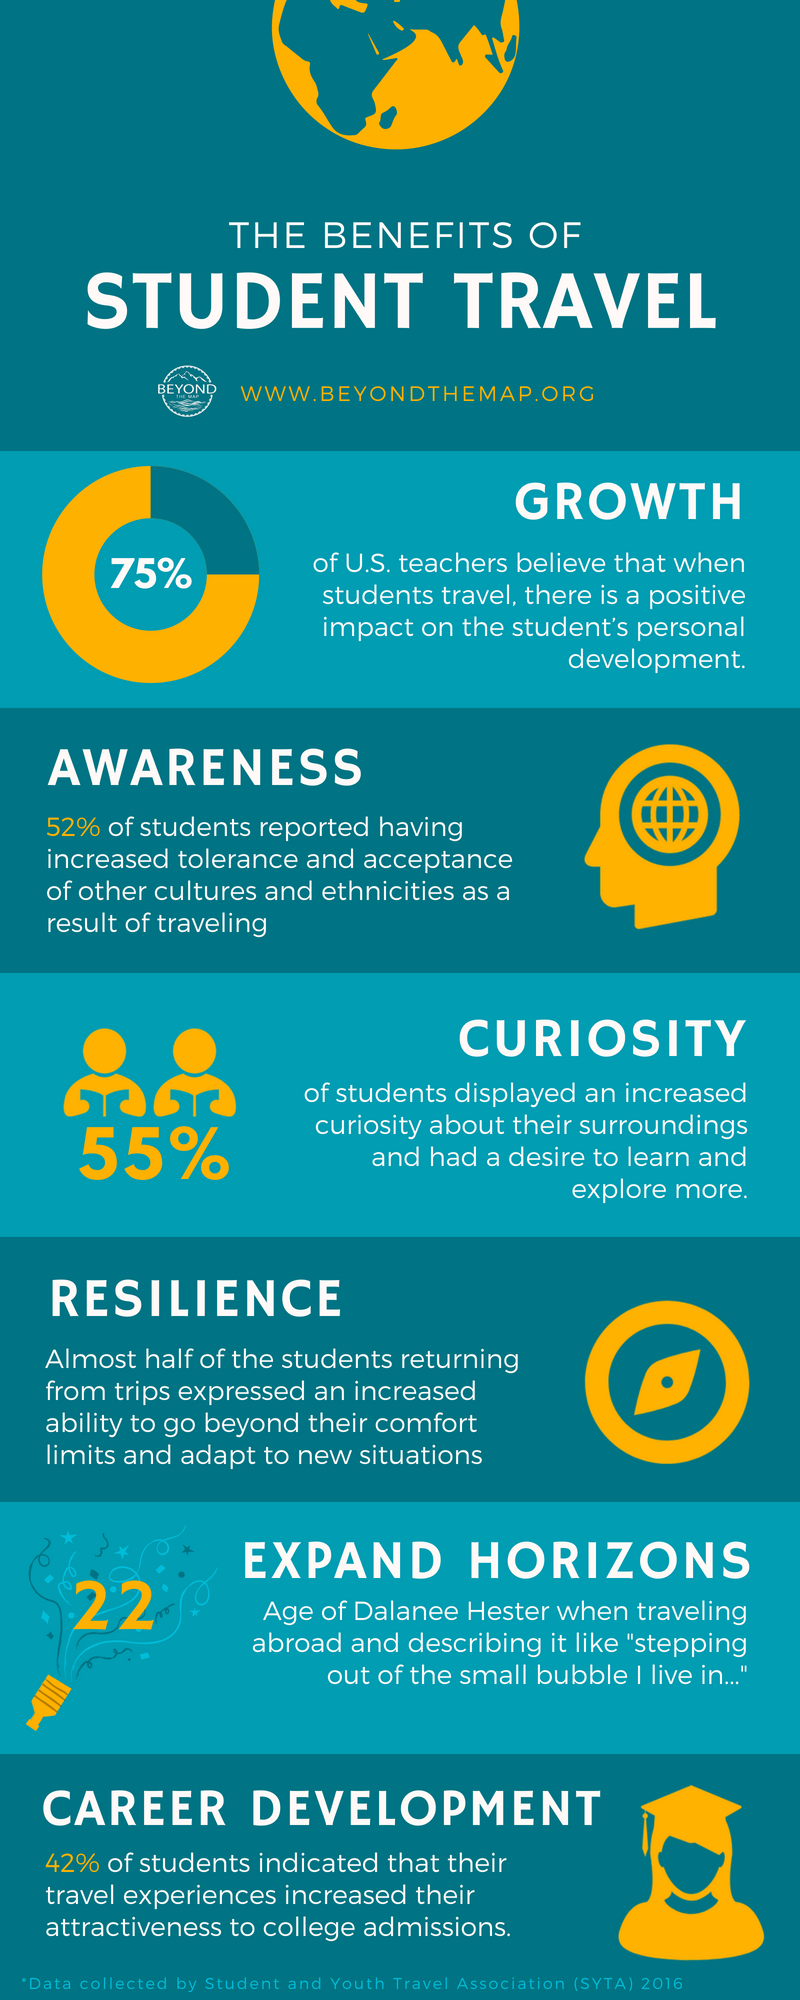 Benefits of Student Travel Infographic